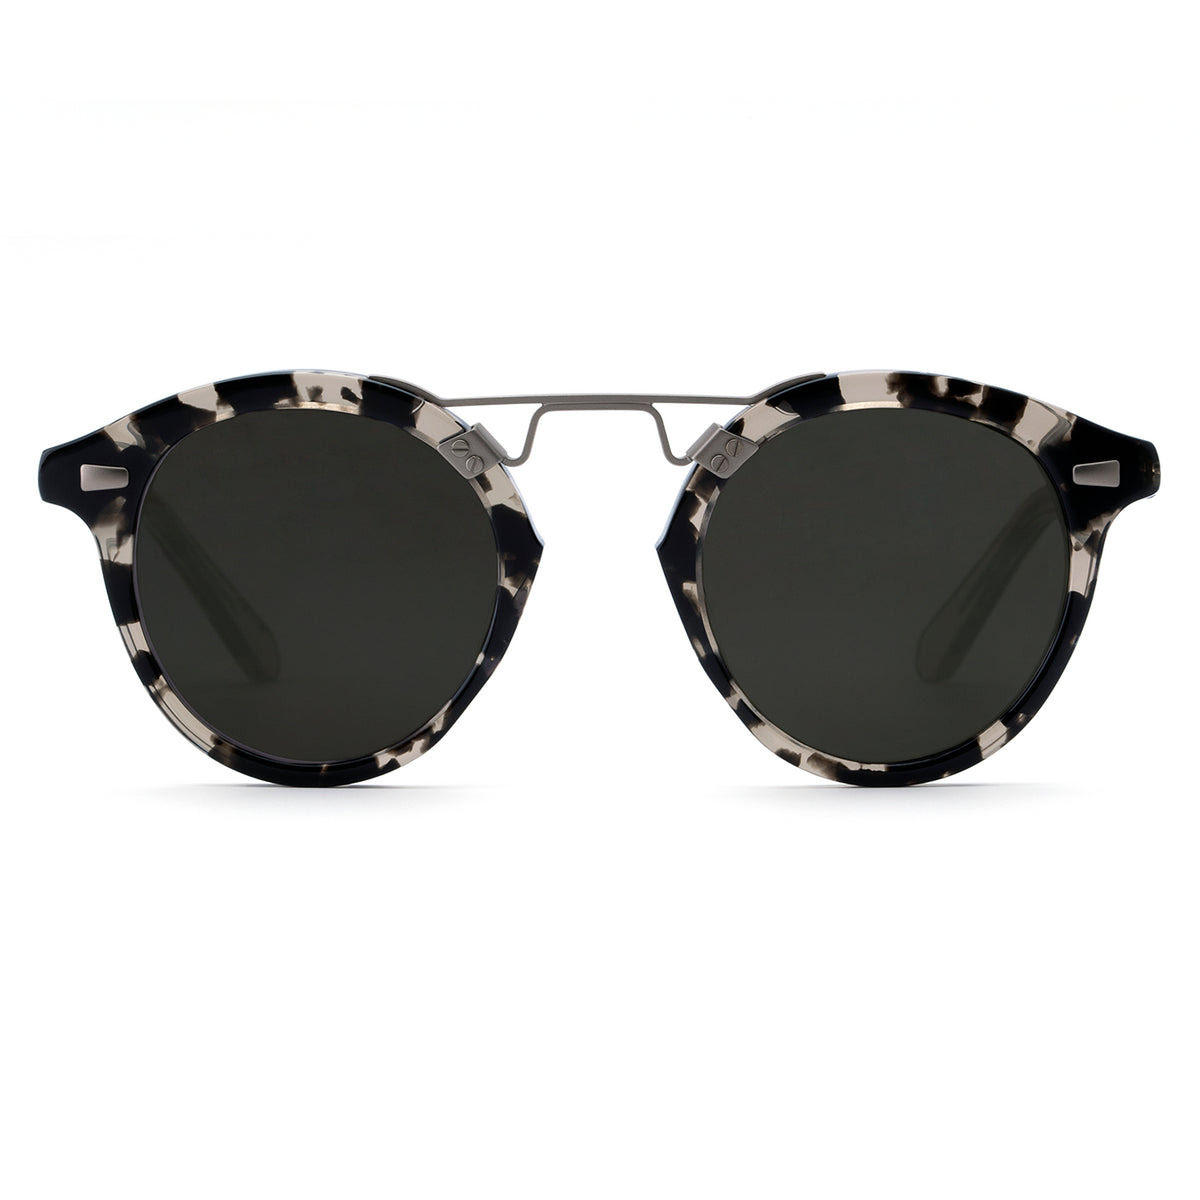 STL II | Charcoal + Brume handcrafted acetate sunglasses